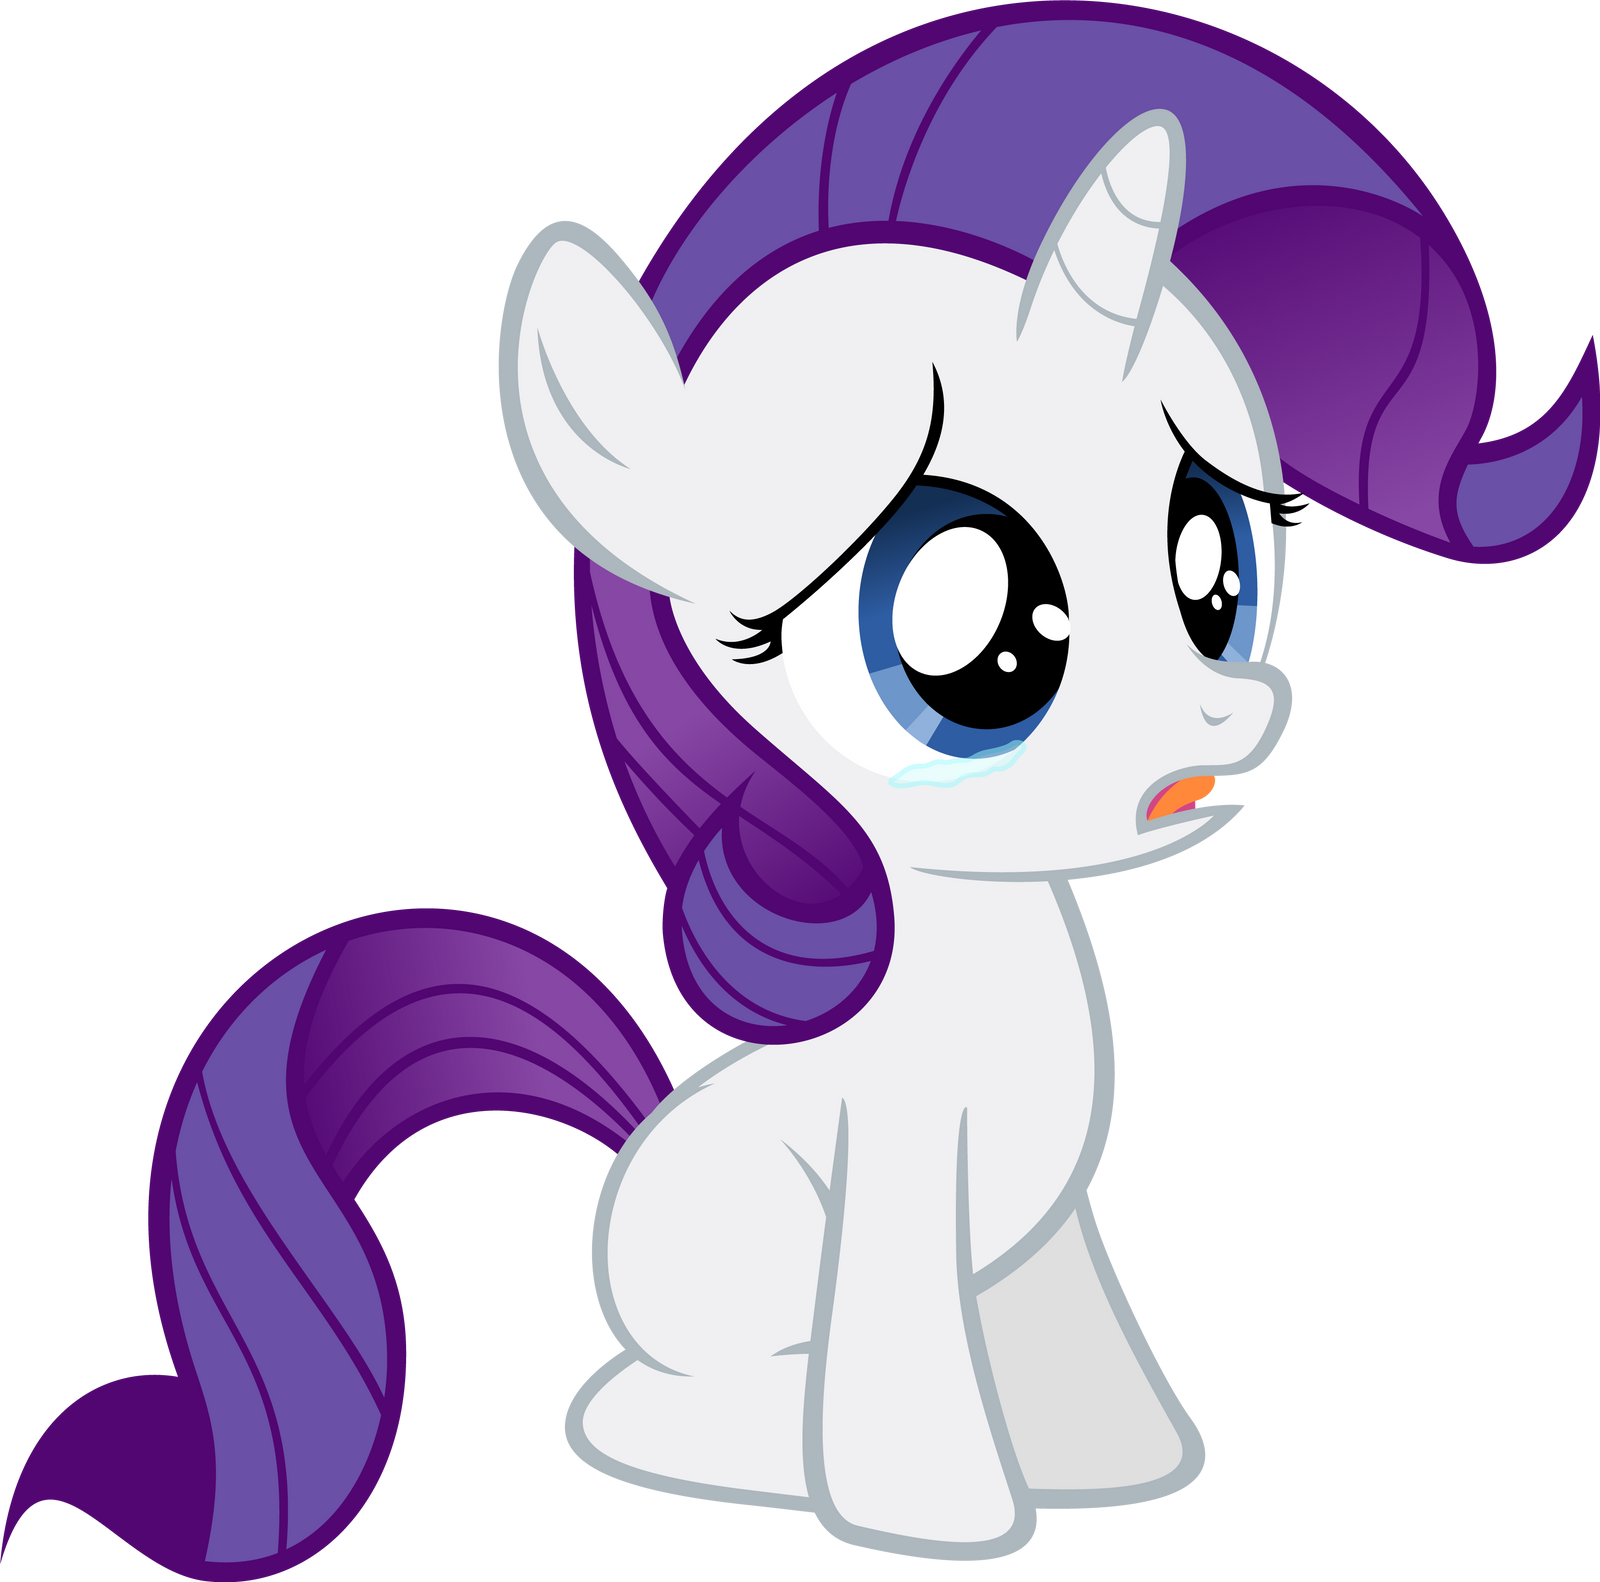 Filly Rarity - Sad by Ocarina0fTimelord on DeviantArt